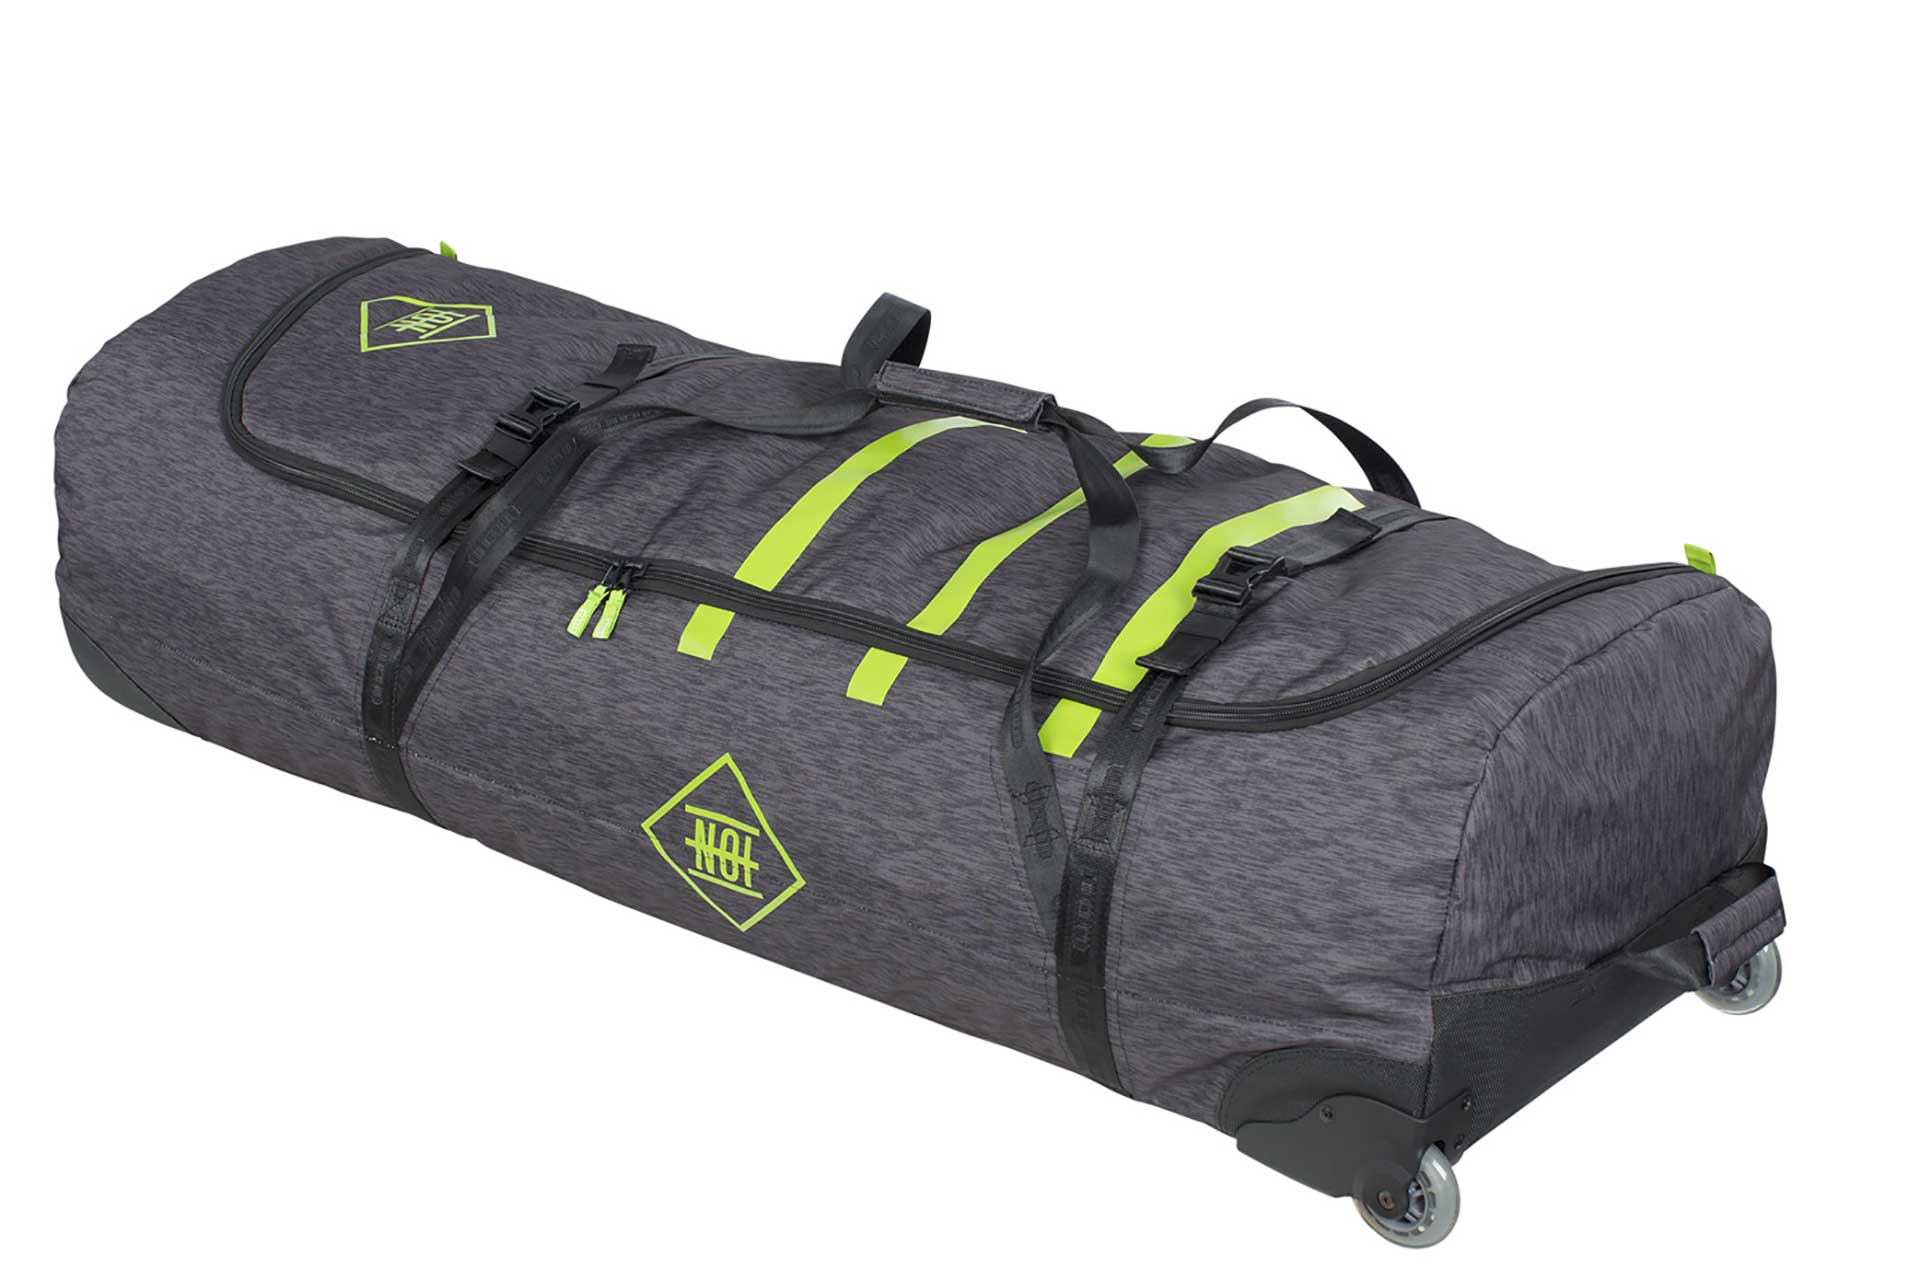 ION-Gearbag-Core-kite-surf-travel-bag-09